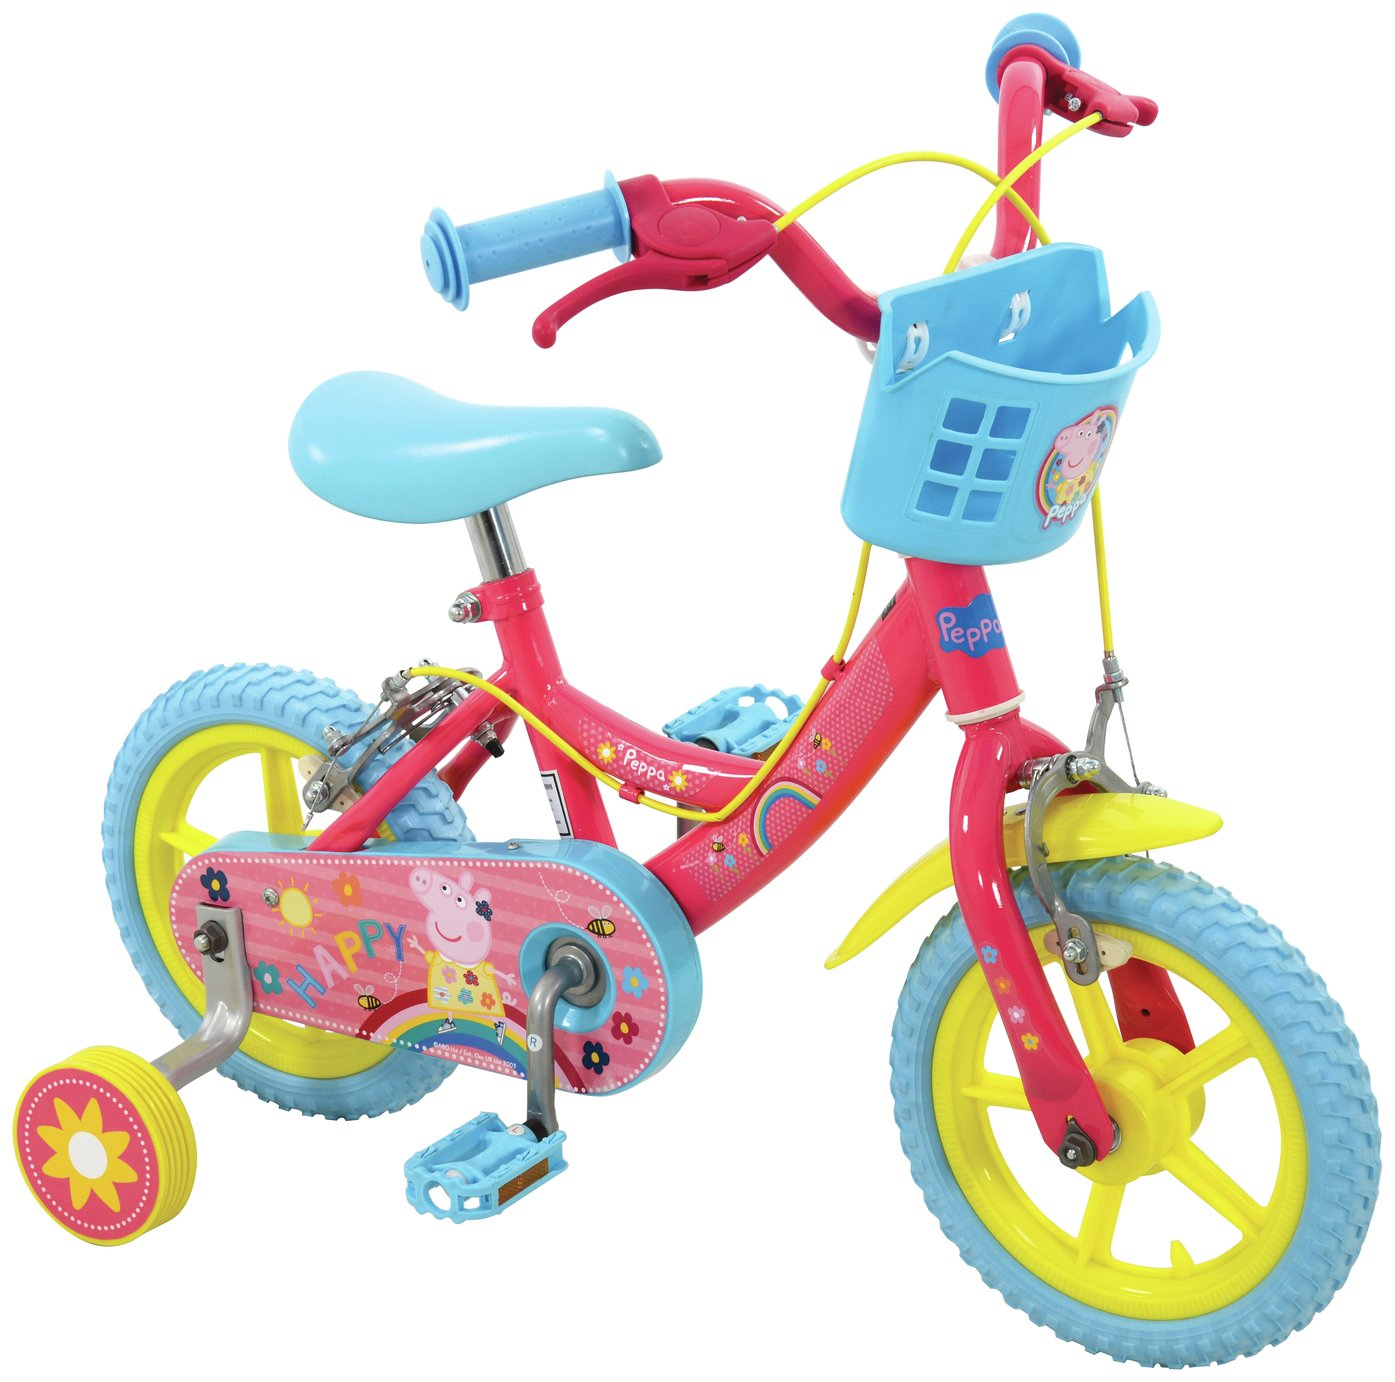 Peppa Pig - 12 Inch - Bike - Girls